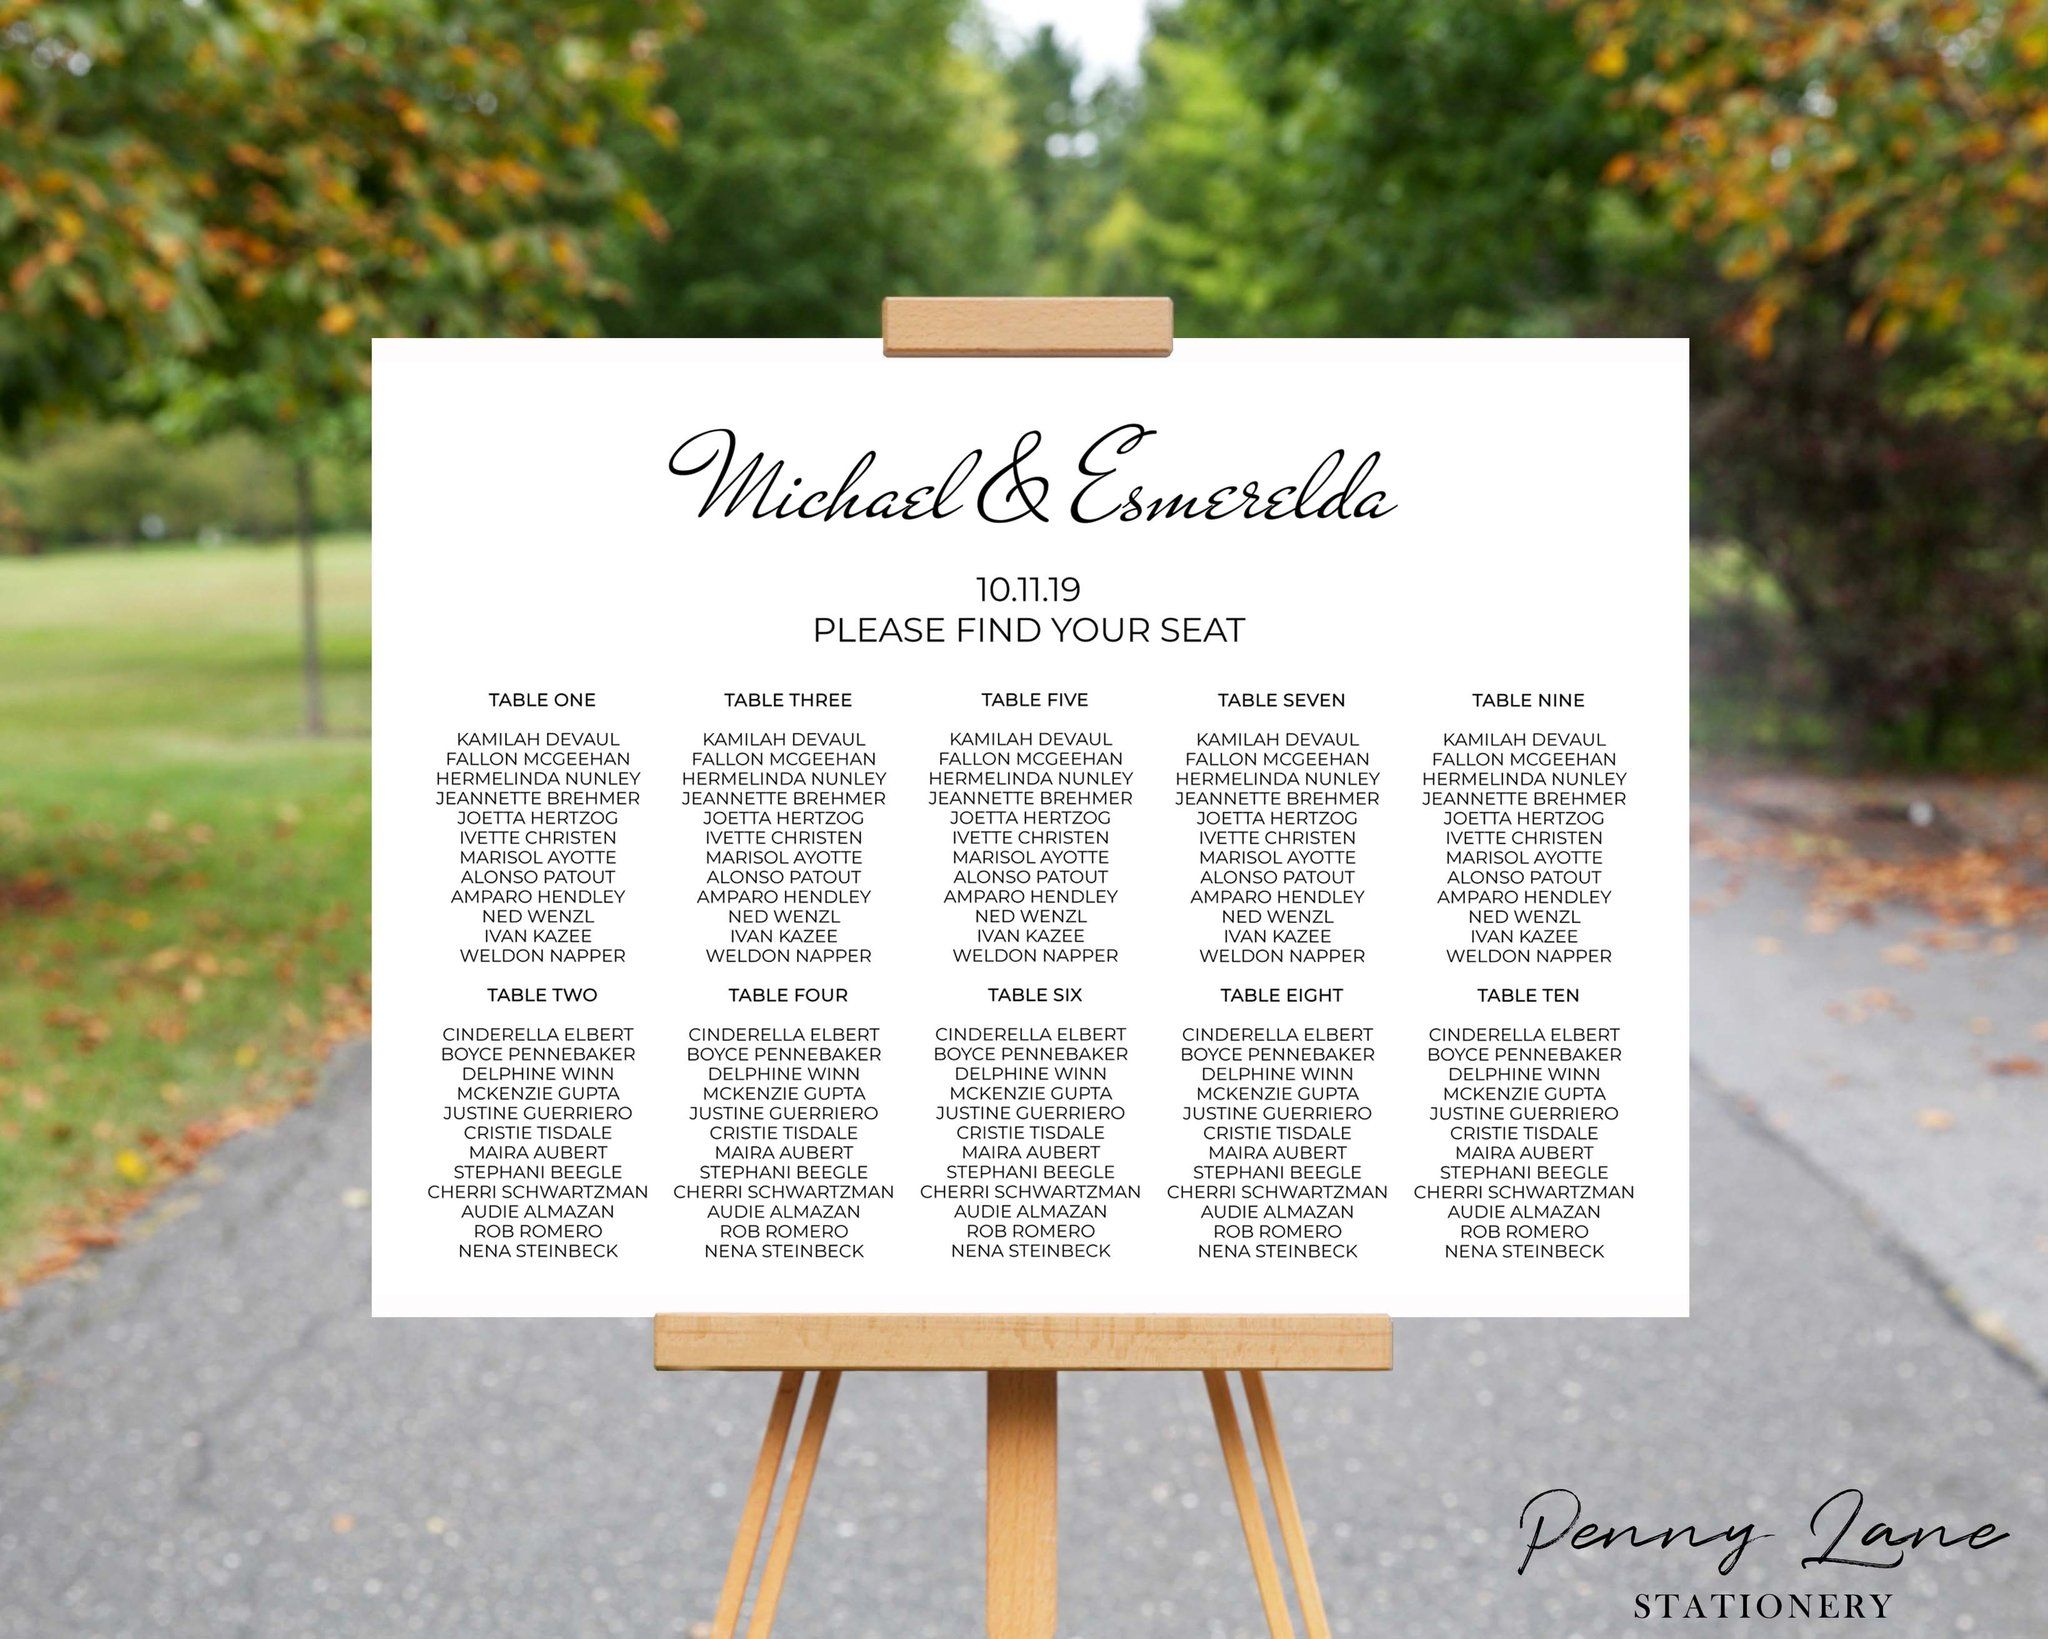 Wedding Seating Chart Simple Seating Seating Chart Wedding Reception Seating Chart